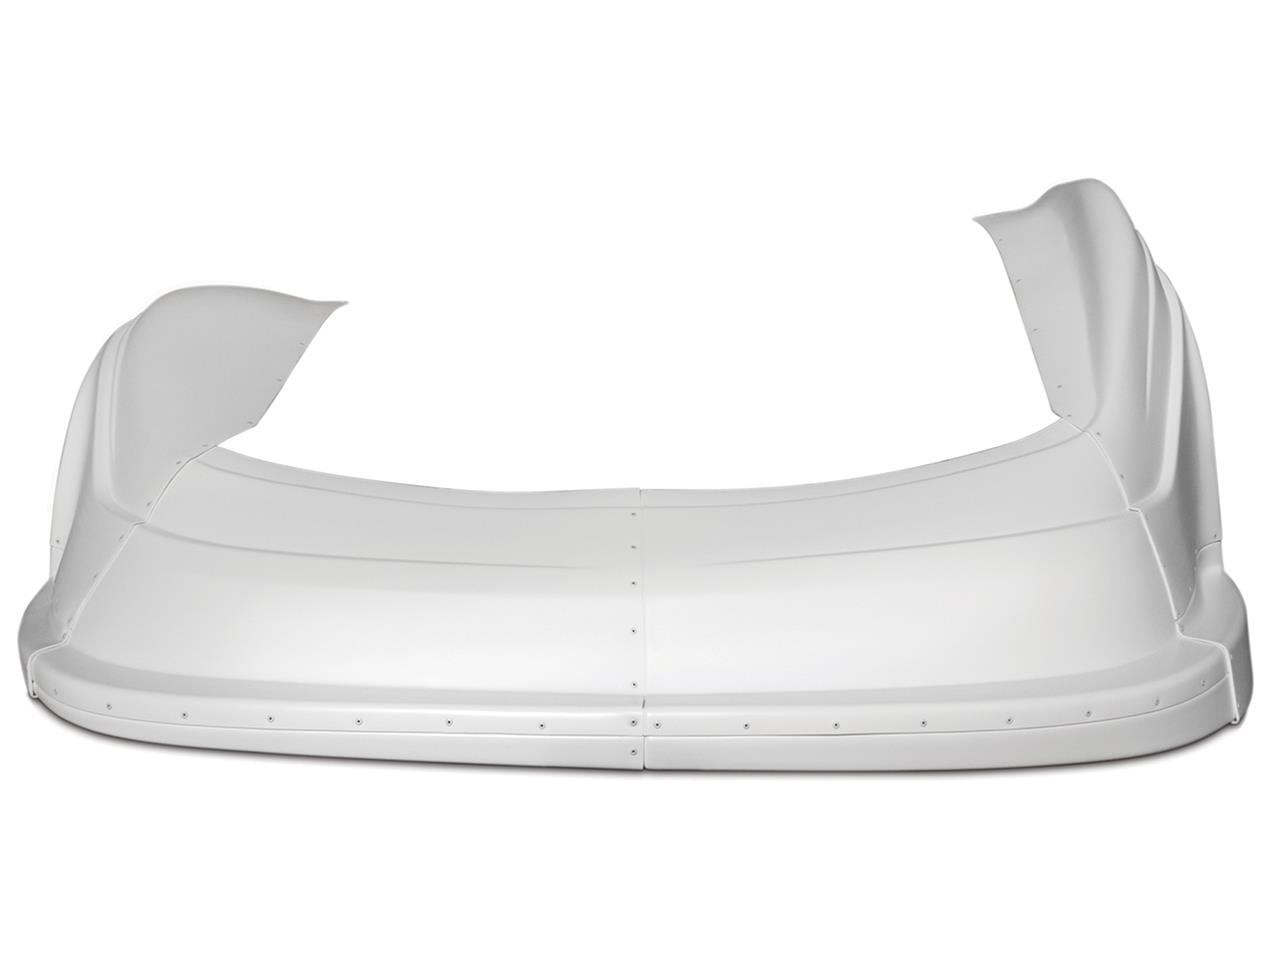 Picture of MD3 Evolution 2 Nose Kit - (No Decals)